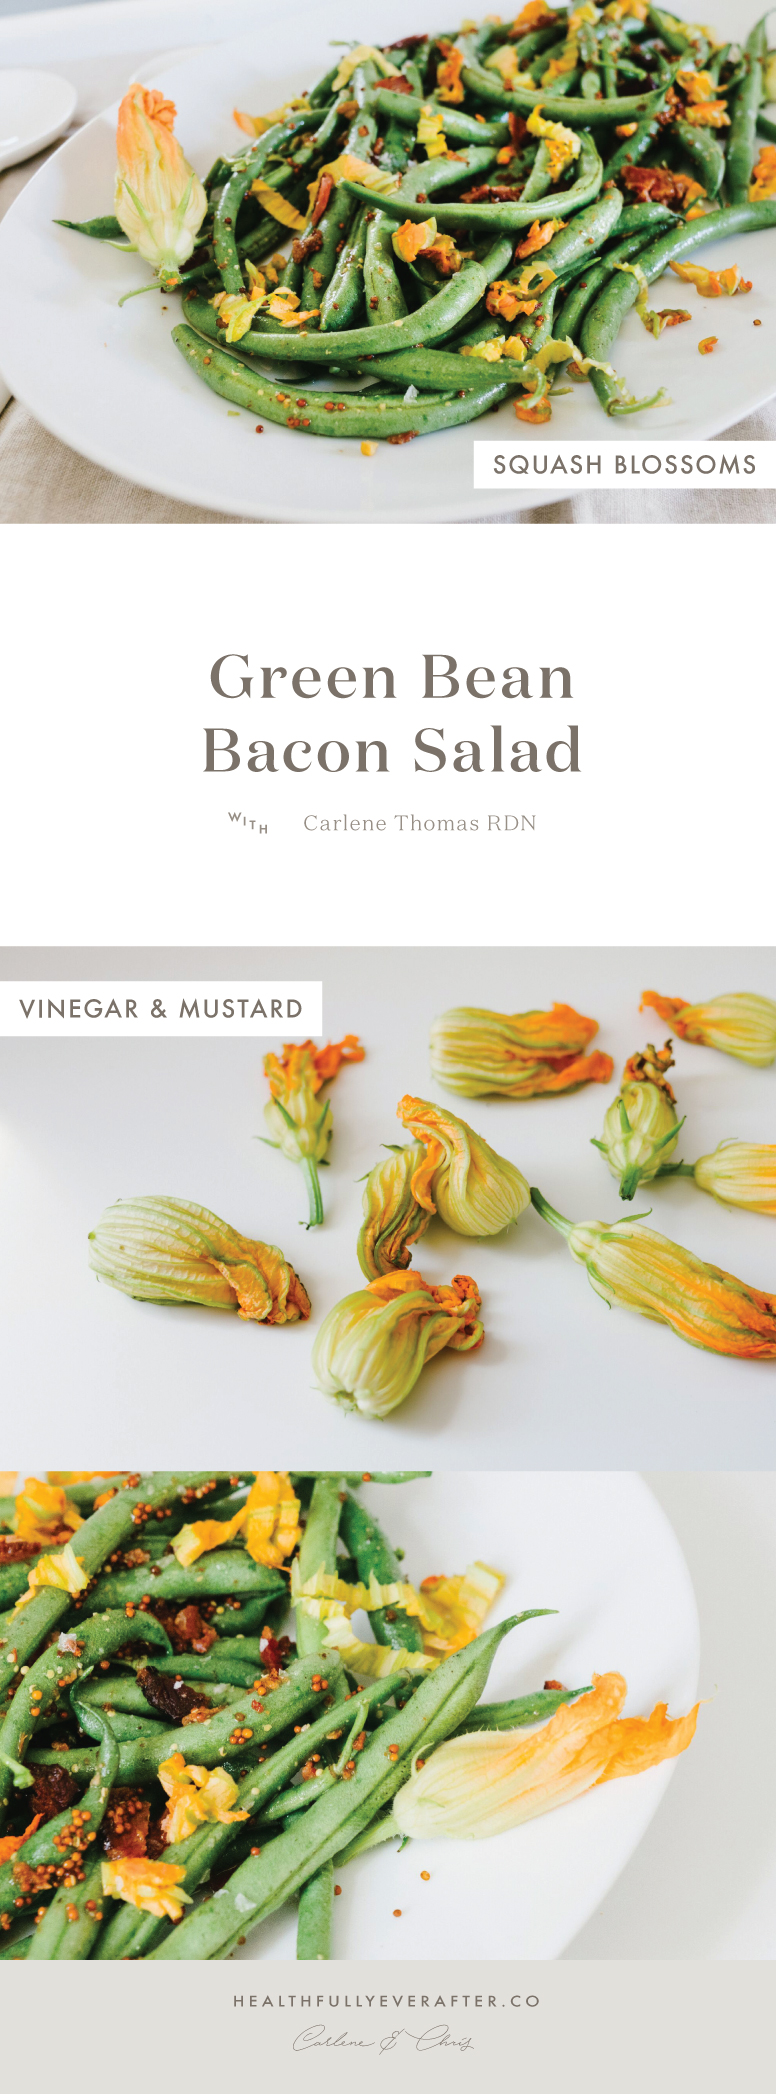 green bean bacon squash blossom salad recipe